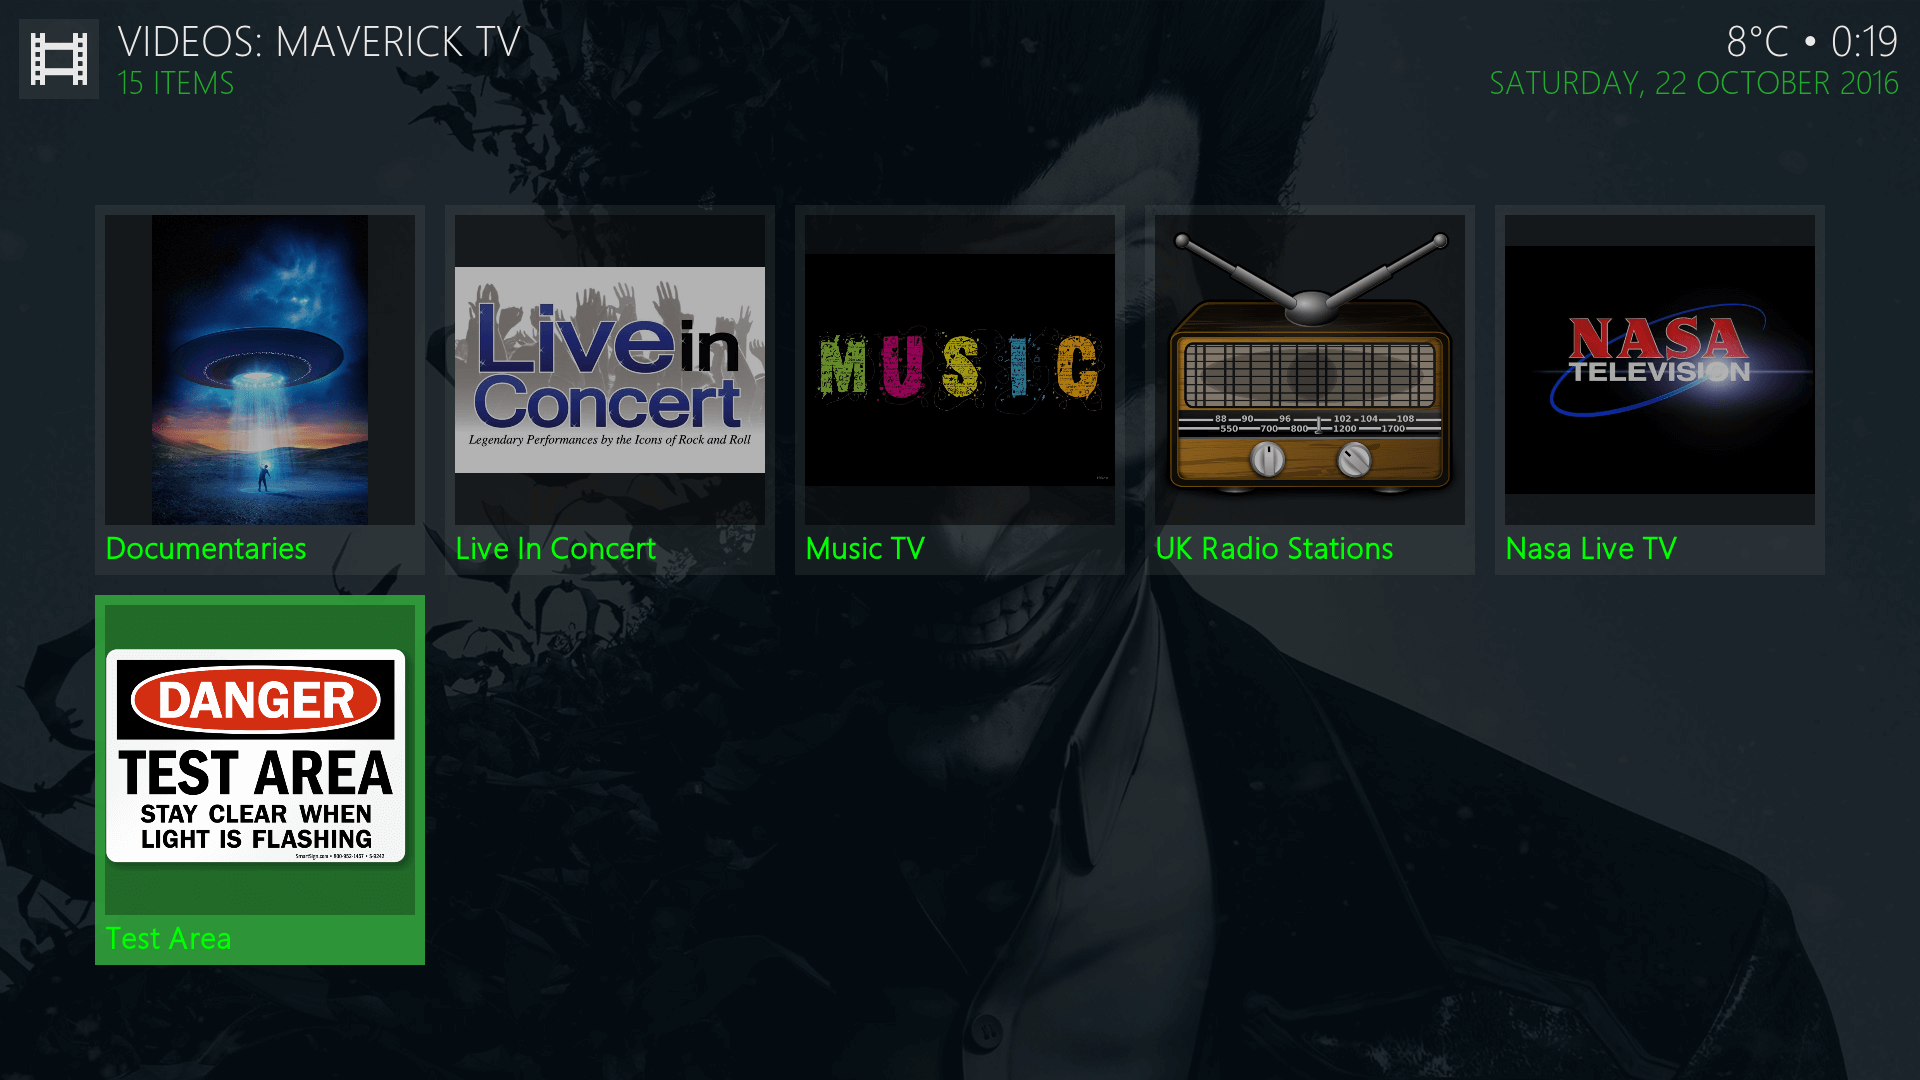 Guide Install Maverick Tv (formally Jokers TV) Kodi Addon Repo